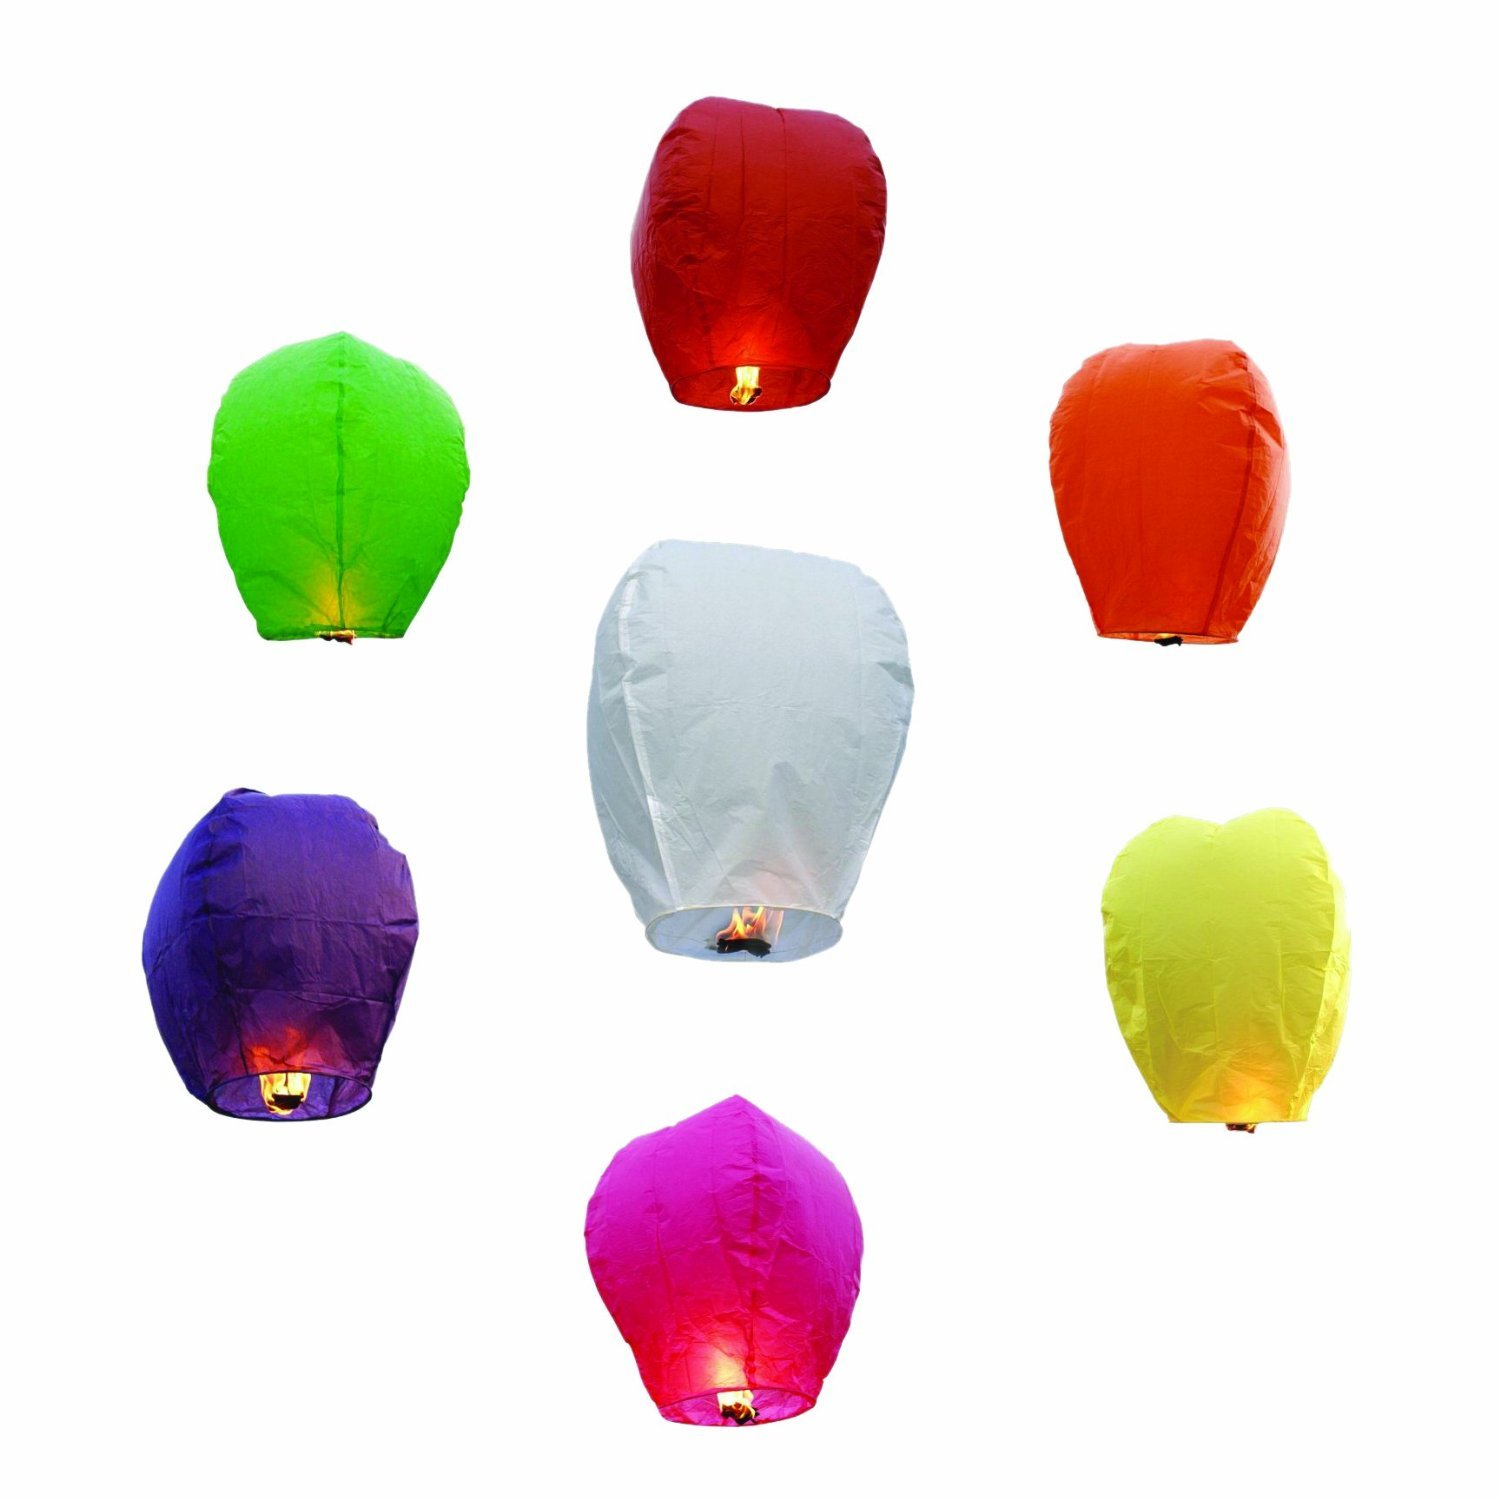 Alrens_DIY(TM) 20 Pcs Chinese Sky Fly Fire Lanterns Wishing Lamp For Wedding Birthday Christmas Party Anniversary Celebration , Multi Color